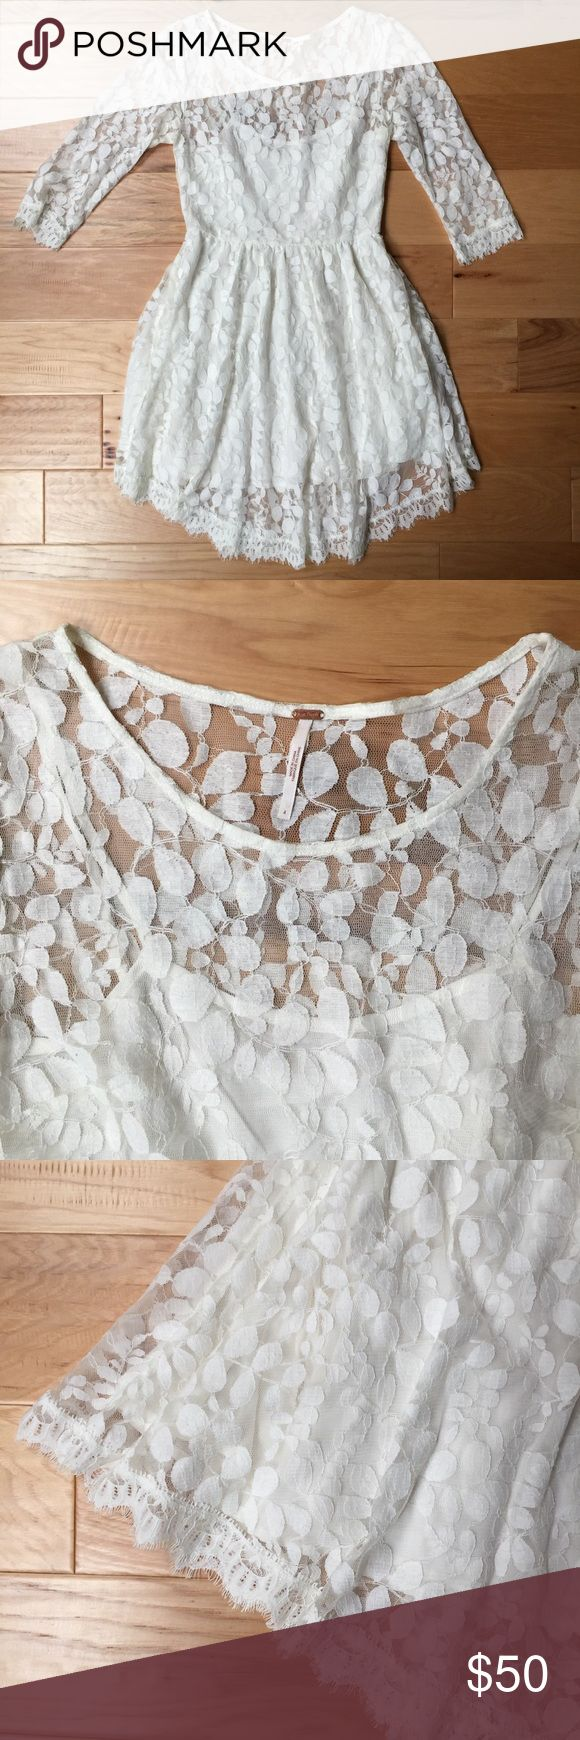 free people | white lace dress In great used condition beautiful white dress with organic lace pattern. Inner lining with sheer outer lace, three quarter sleeves, and very flowy skirt. Absolutely gorgeous. No longer fits me. Just machine washed it once. Purchased from Bloomingdales. Clean, Comes from pet and smoke free home. Free People Dresses